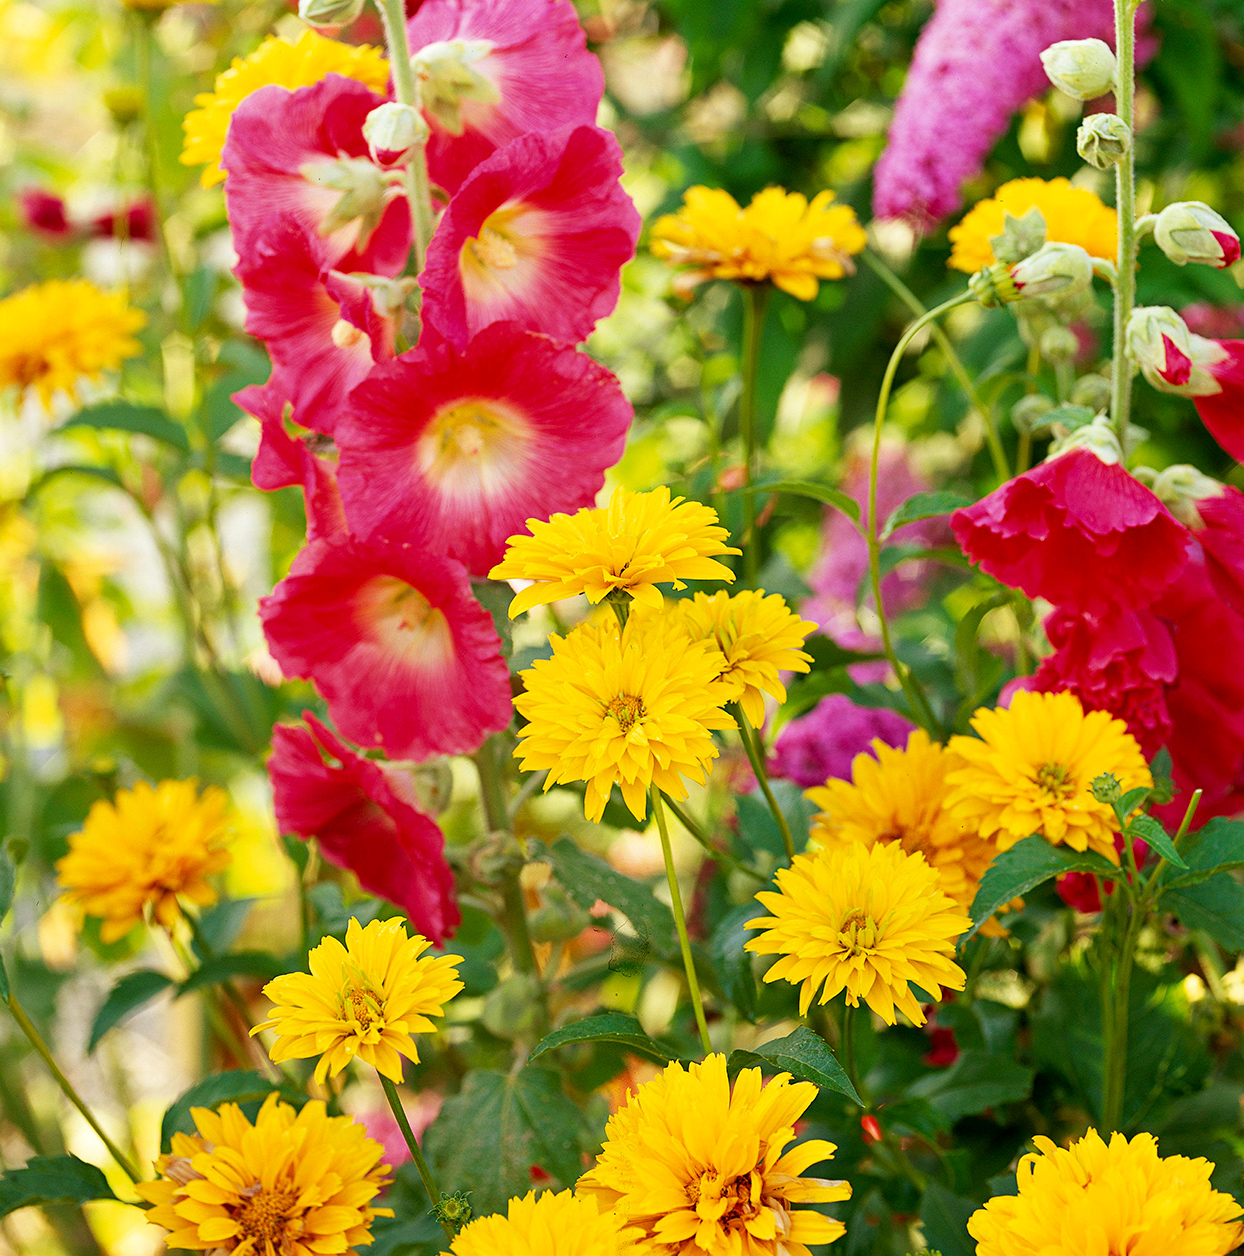 Cottage style garden with yellow and pink flowers